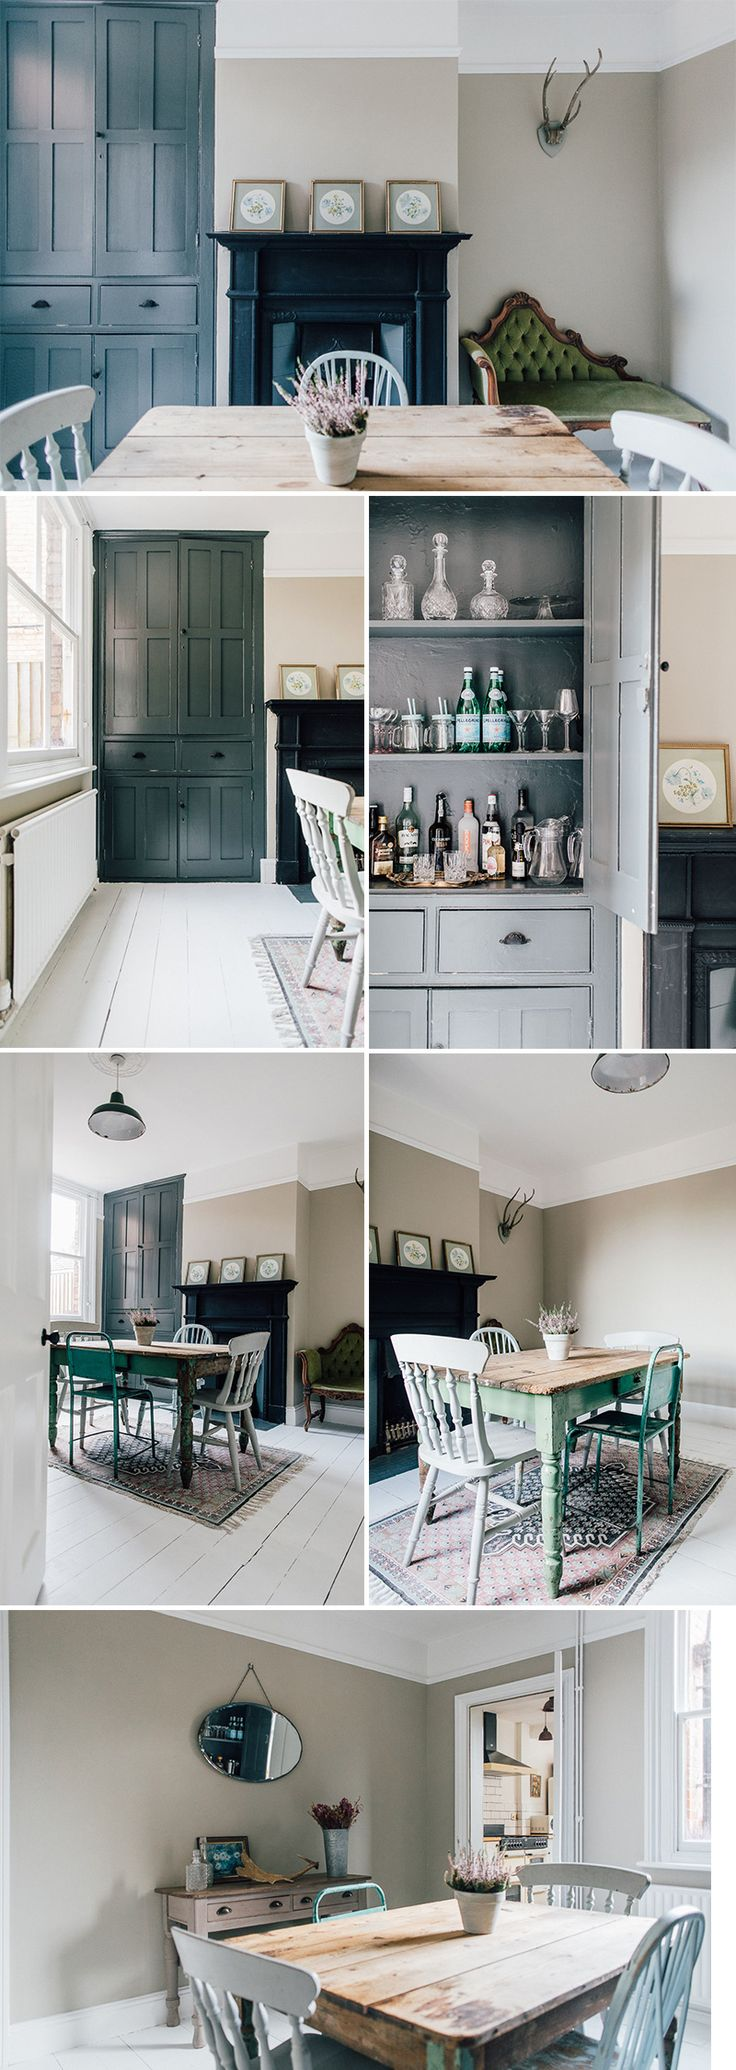 Alcove Cupboard | cupboard Bar Painted In Farrow And Ball | Light Dining Room In A Period Property | Dining room with Vintage Furniture | Vintage Distressed Table and Antique Chairs | Antique Decanter | Antique Chaise Longue | how to style a Mantle | Vintage Console Table | how to style Antlers